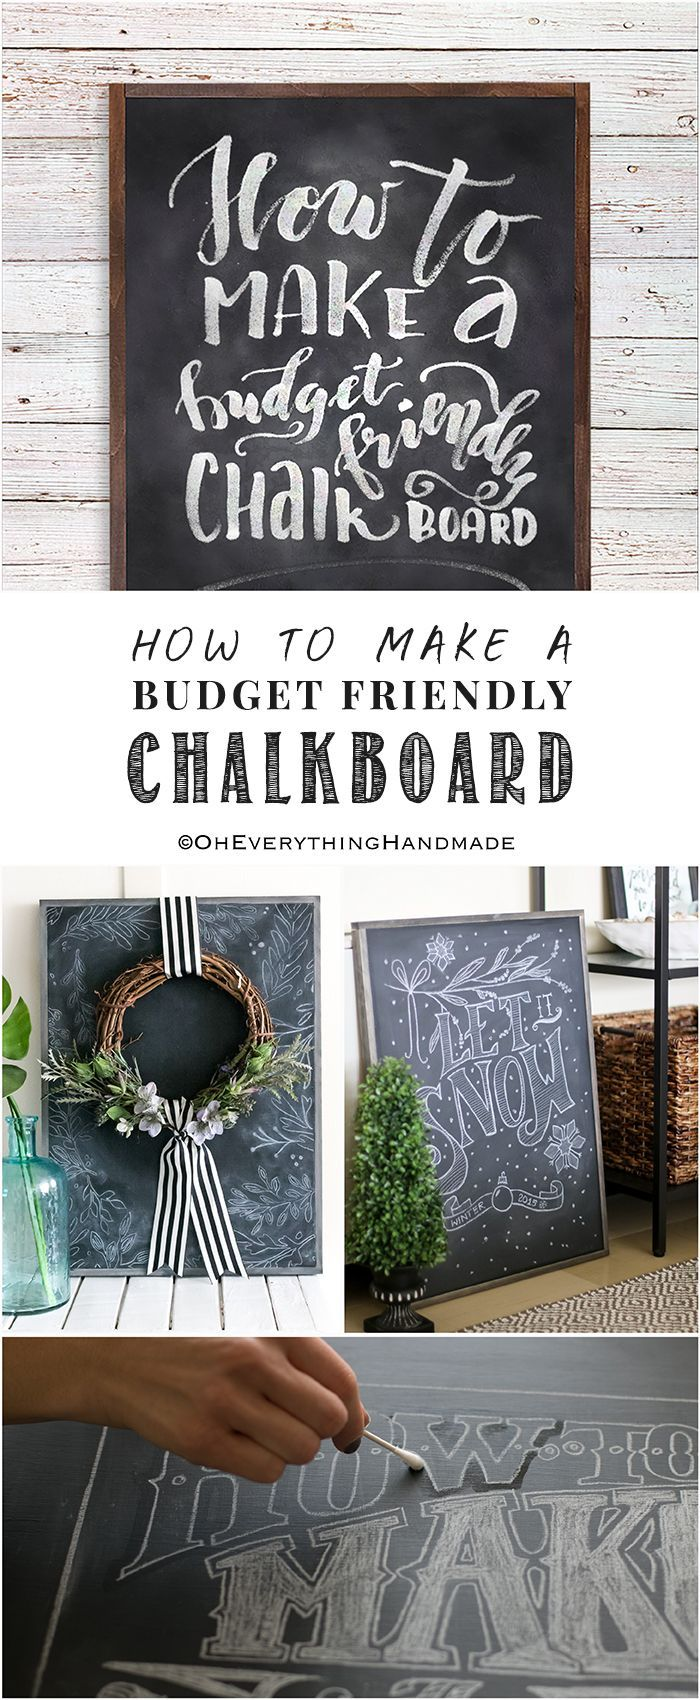 How to's : Today, I'll be sharing How to Make a Budget Friendly Chalkboard. #chalkboard #budget #howto #makeit #DIY #tutorial #handmade #wallart #oheverythinghandmade